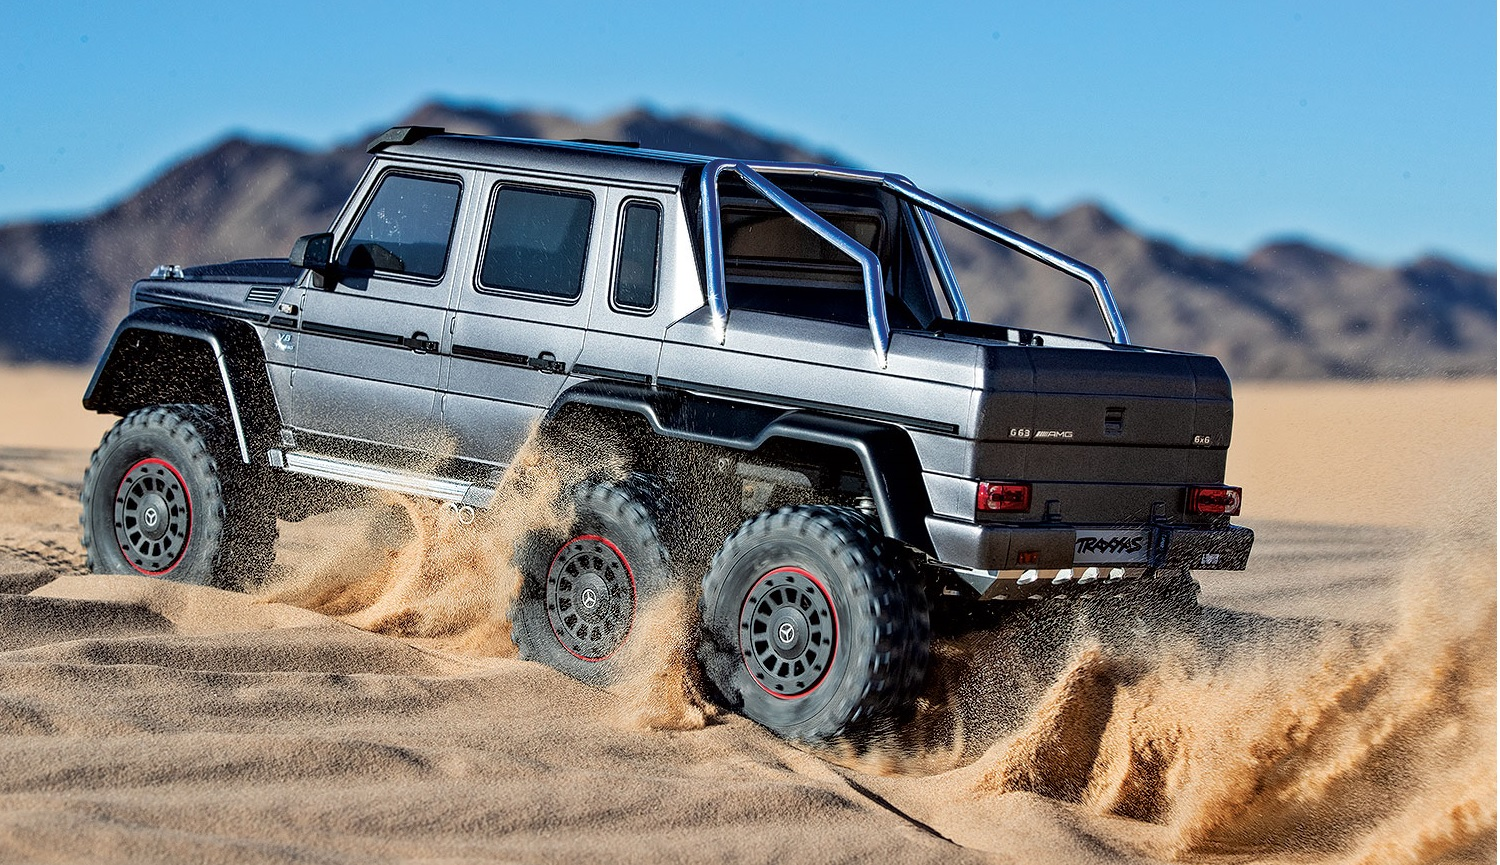 88096-4-TRX4-MB-6x6-Silver-dunes-3qtr-rear-left-DX1I8411.jpg